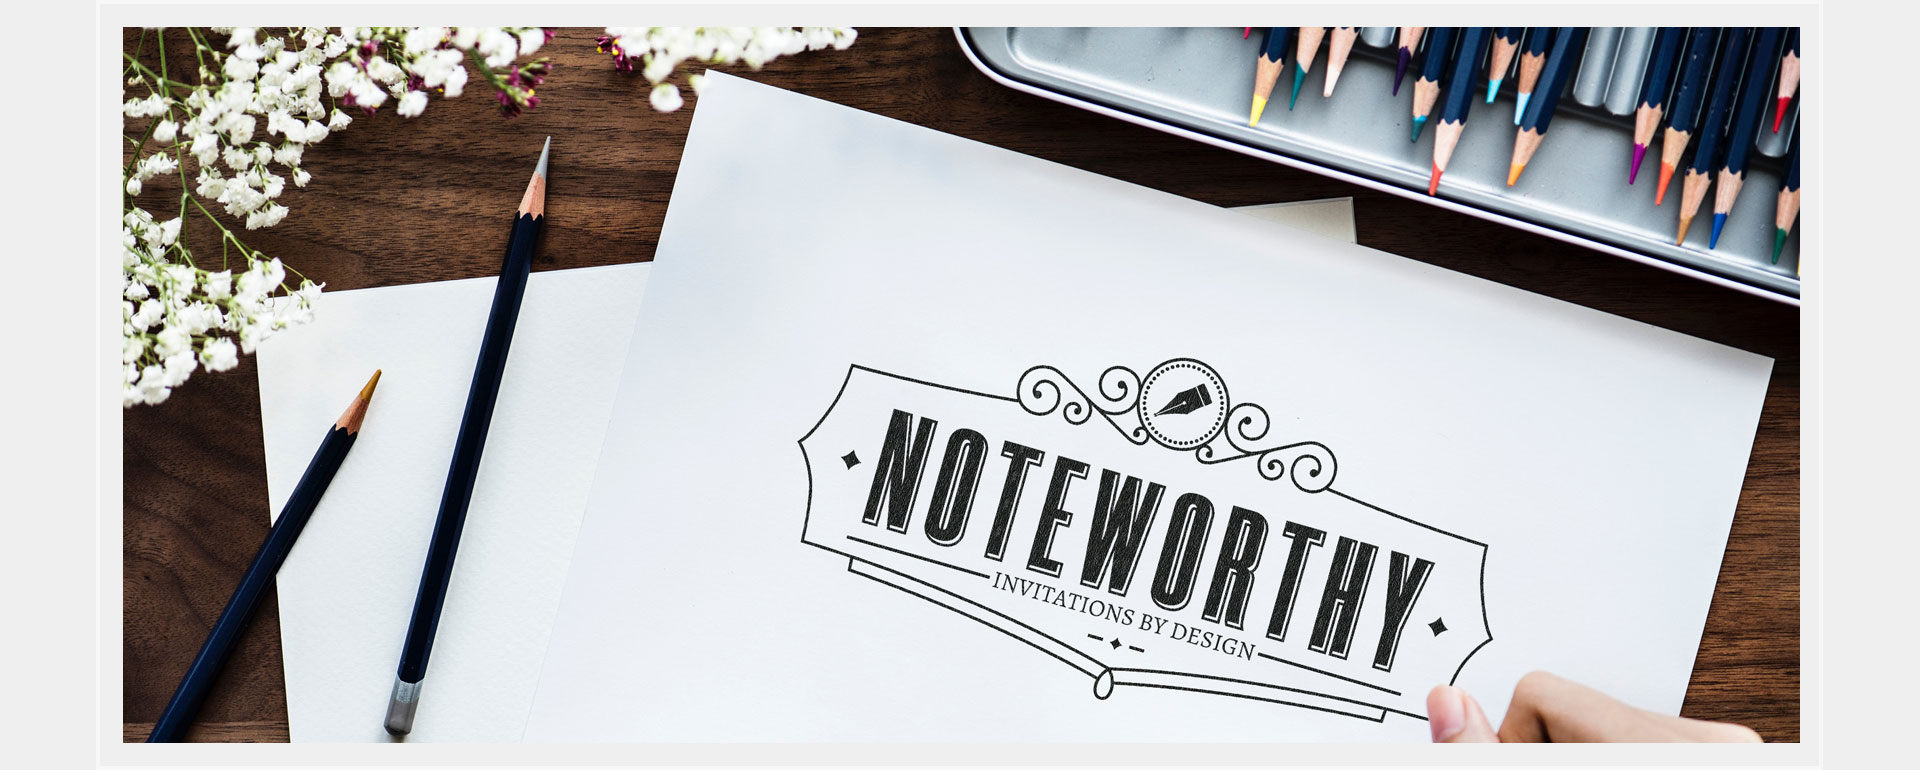 About Noteworthy